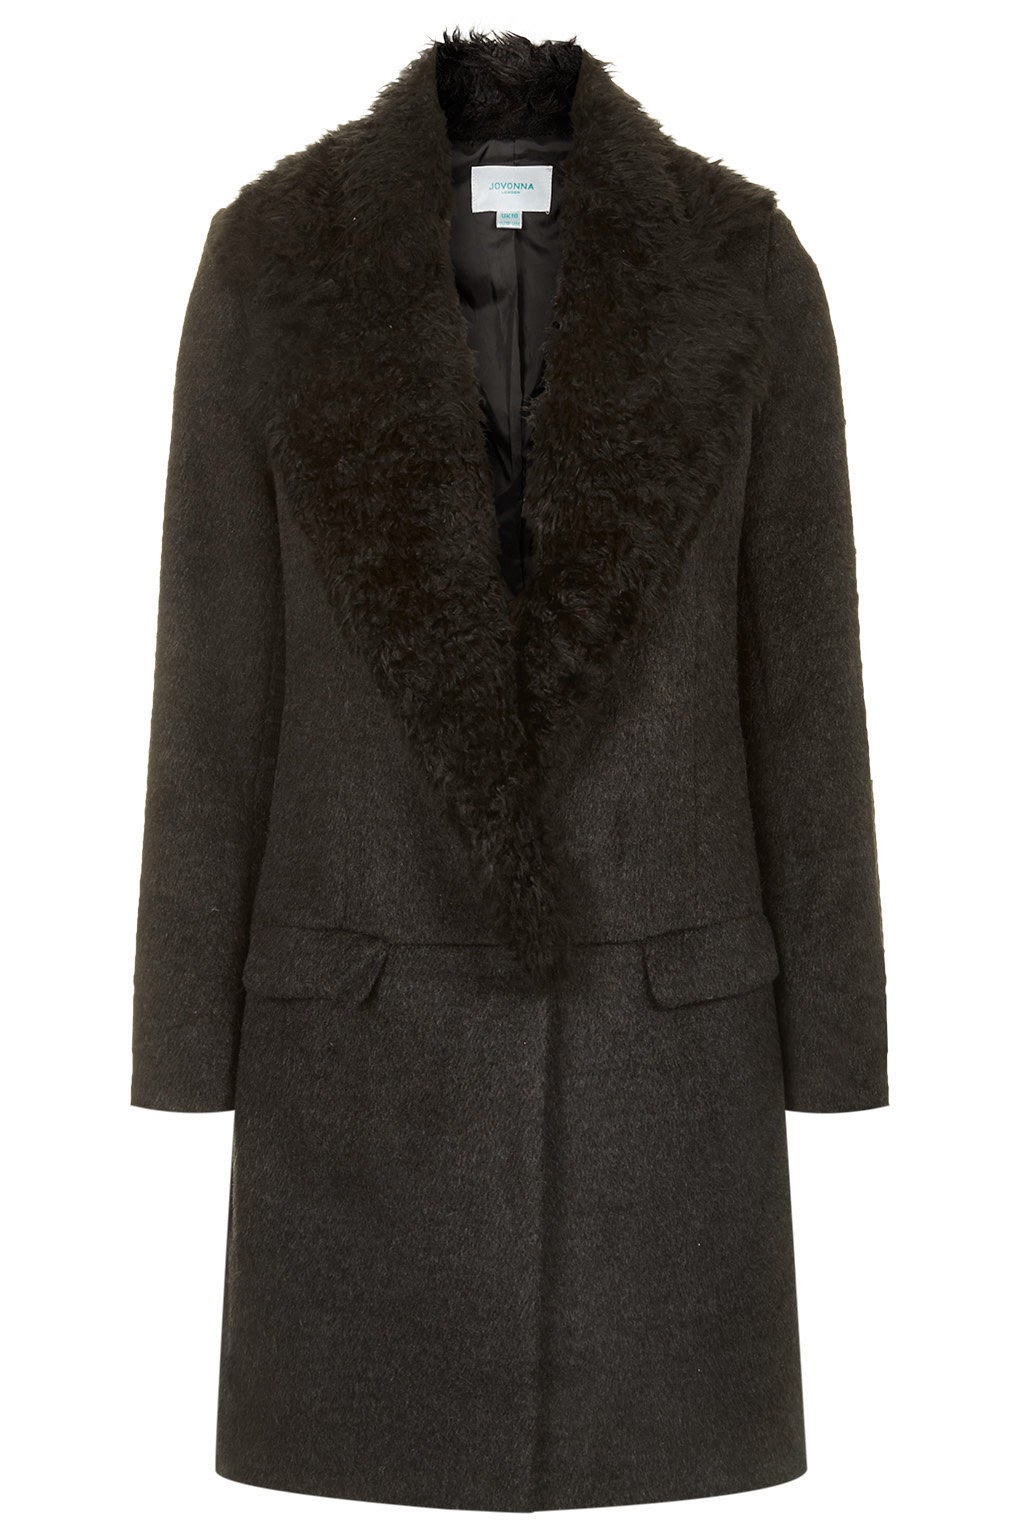 black jovonna coat with fur collar